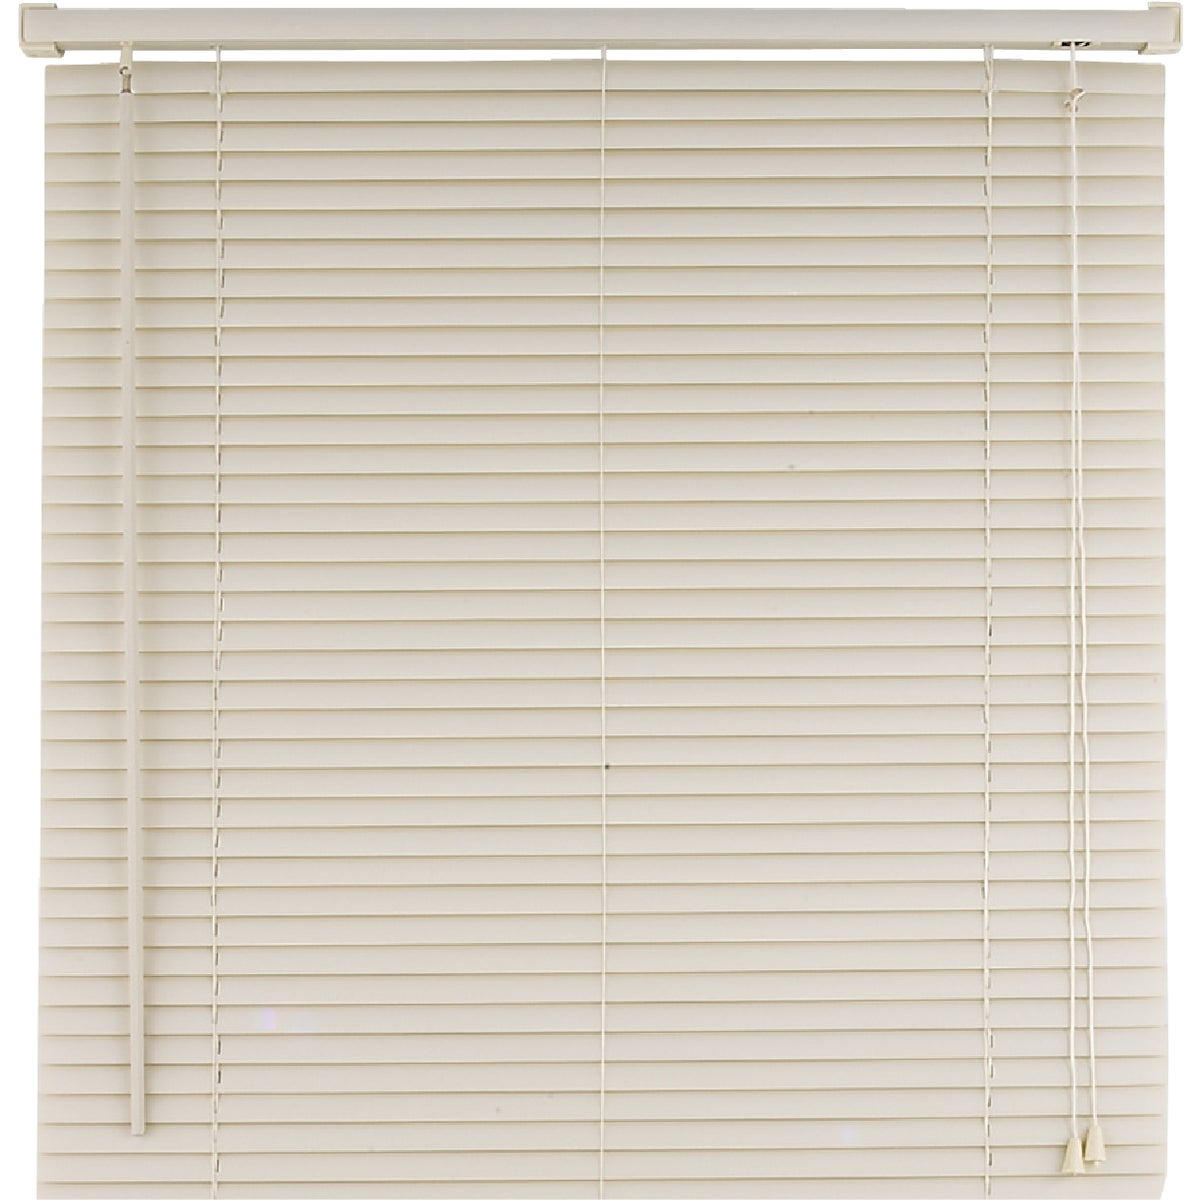 46X64 ALABASTER BLIND - 4664AL by Lotus Wind Incom